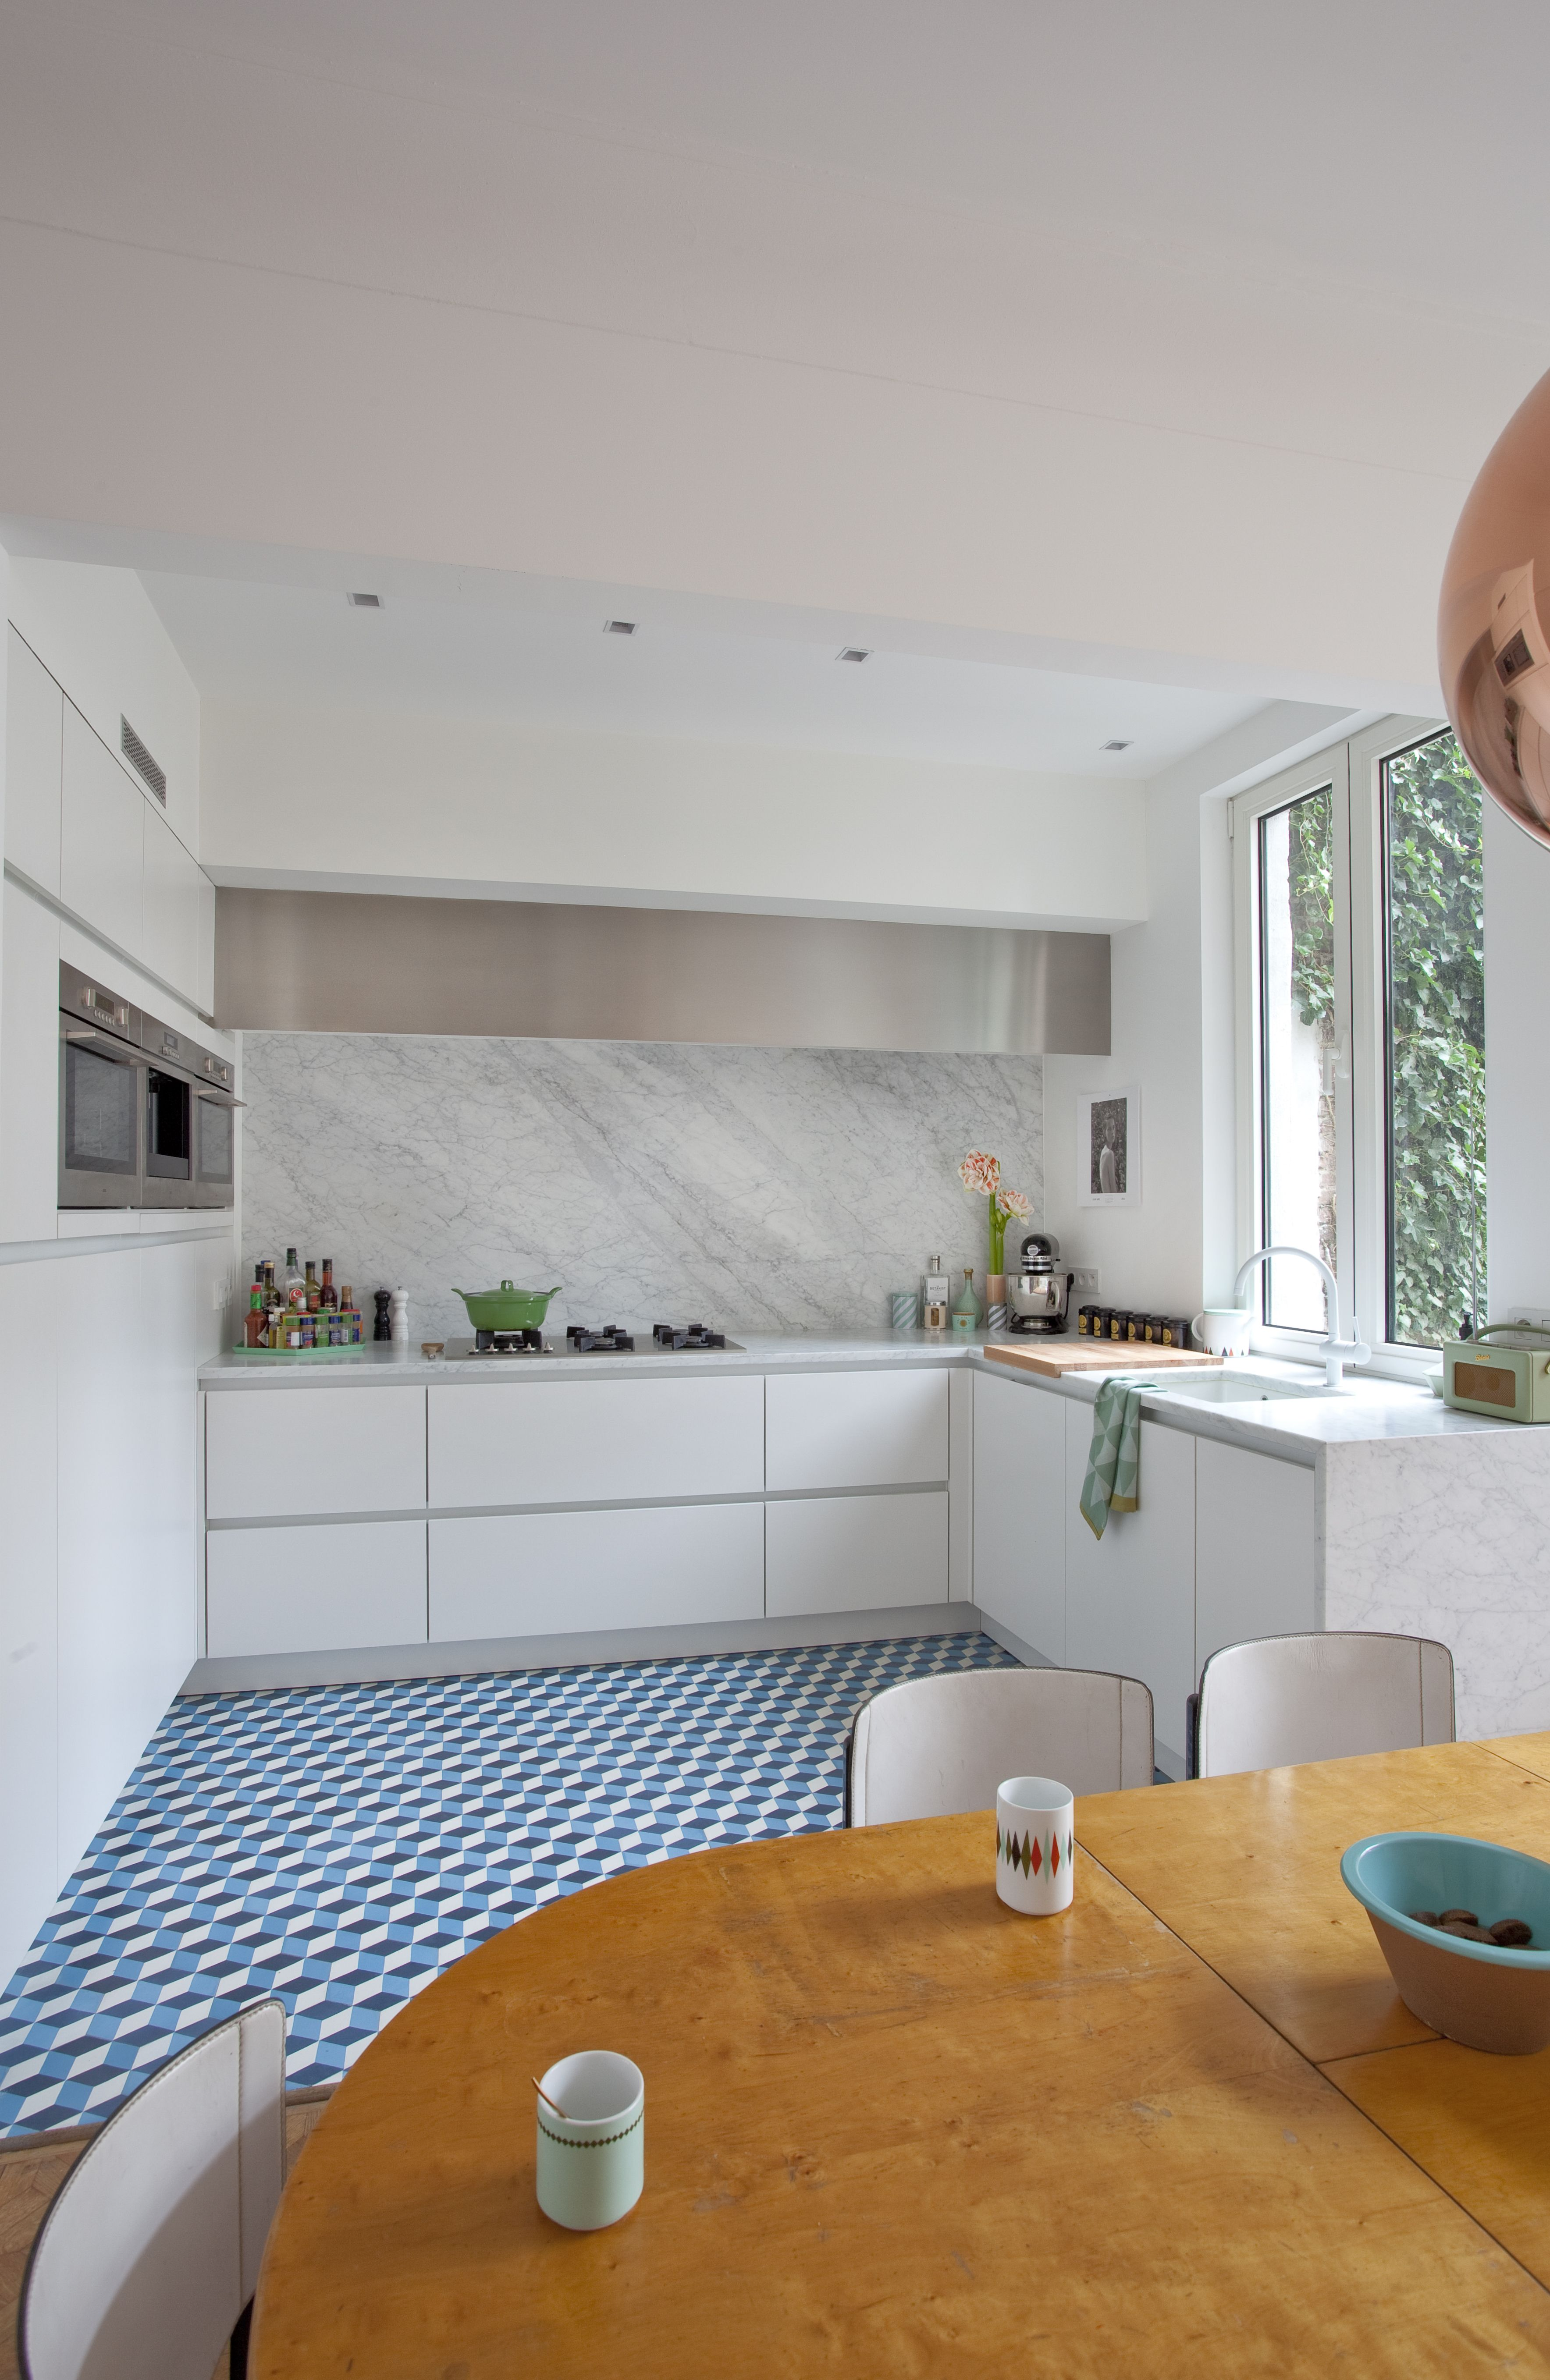 Tvis Keuken With A Bright Wild Geometric Floor Design A Minimalist White